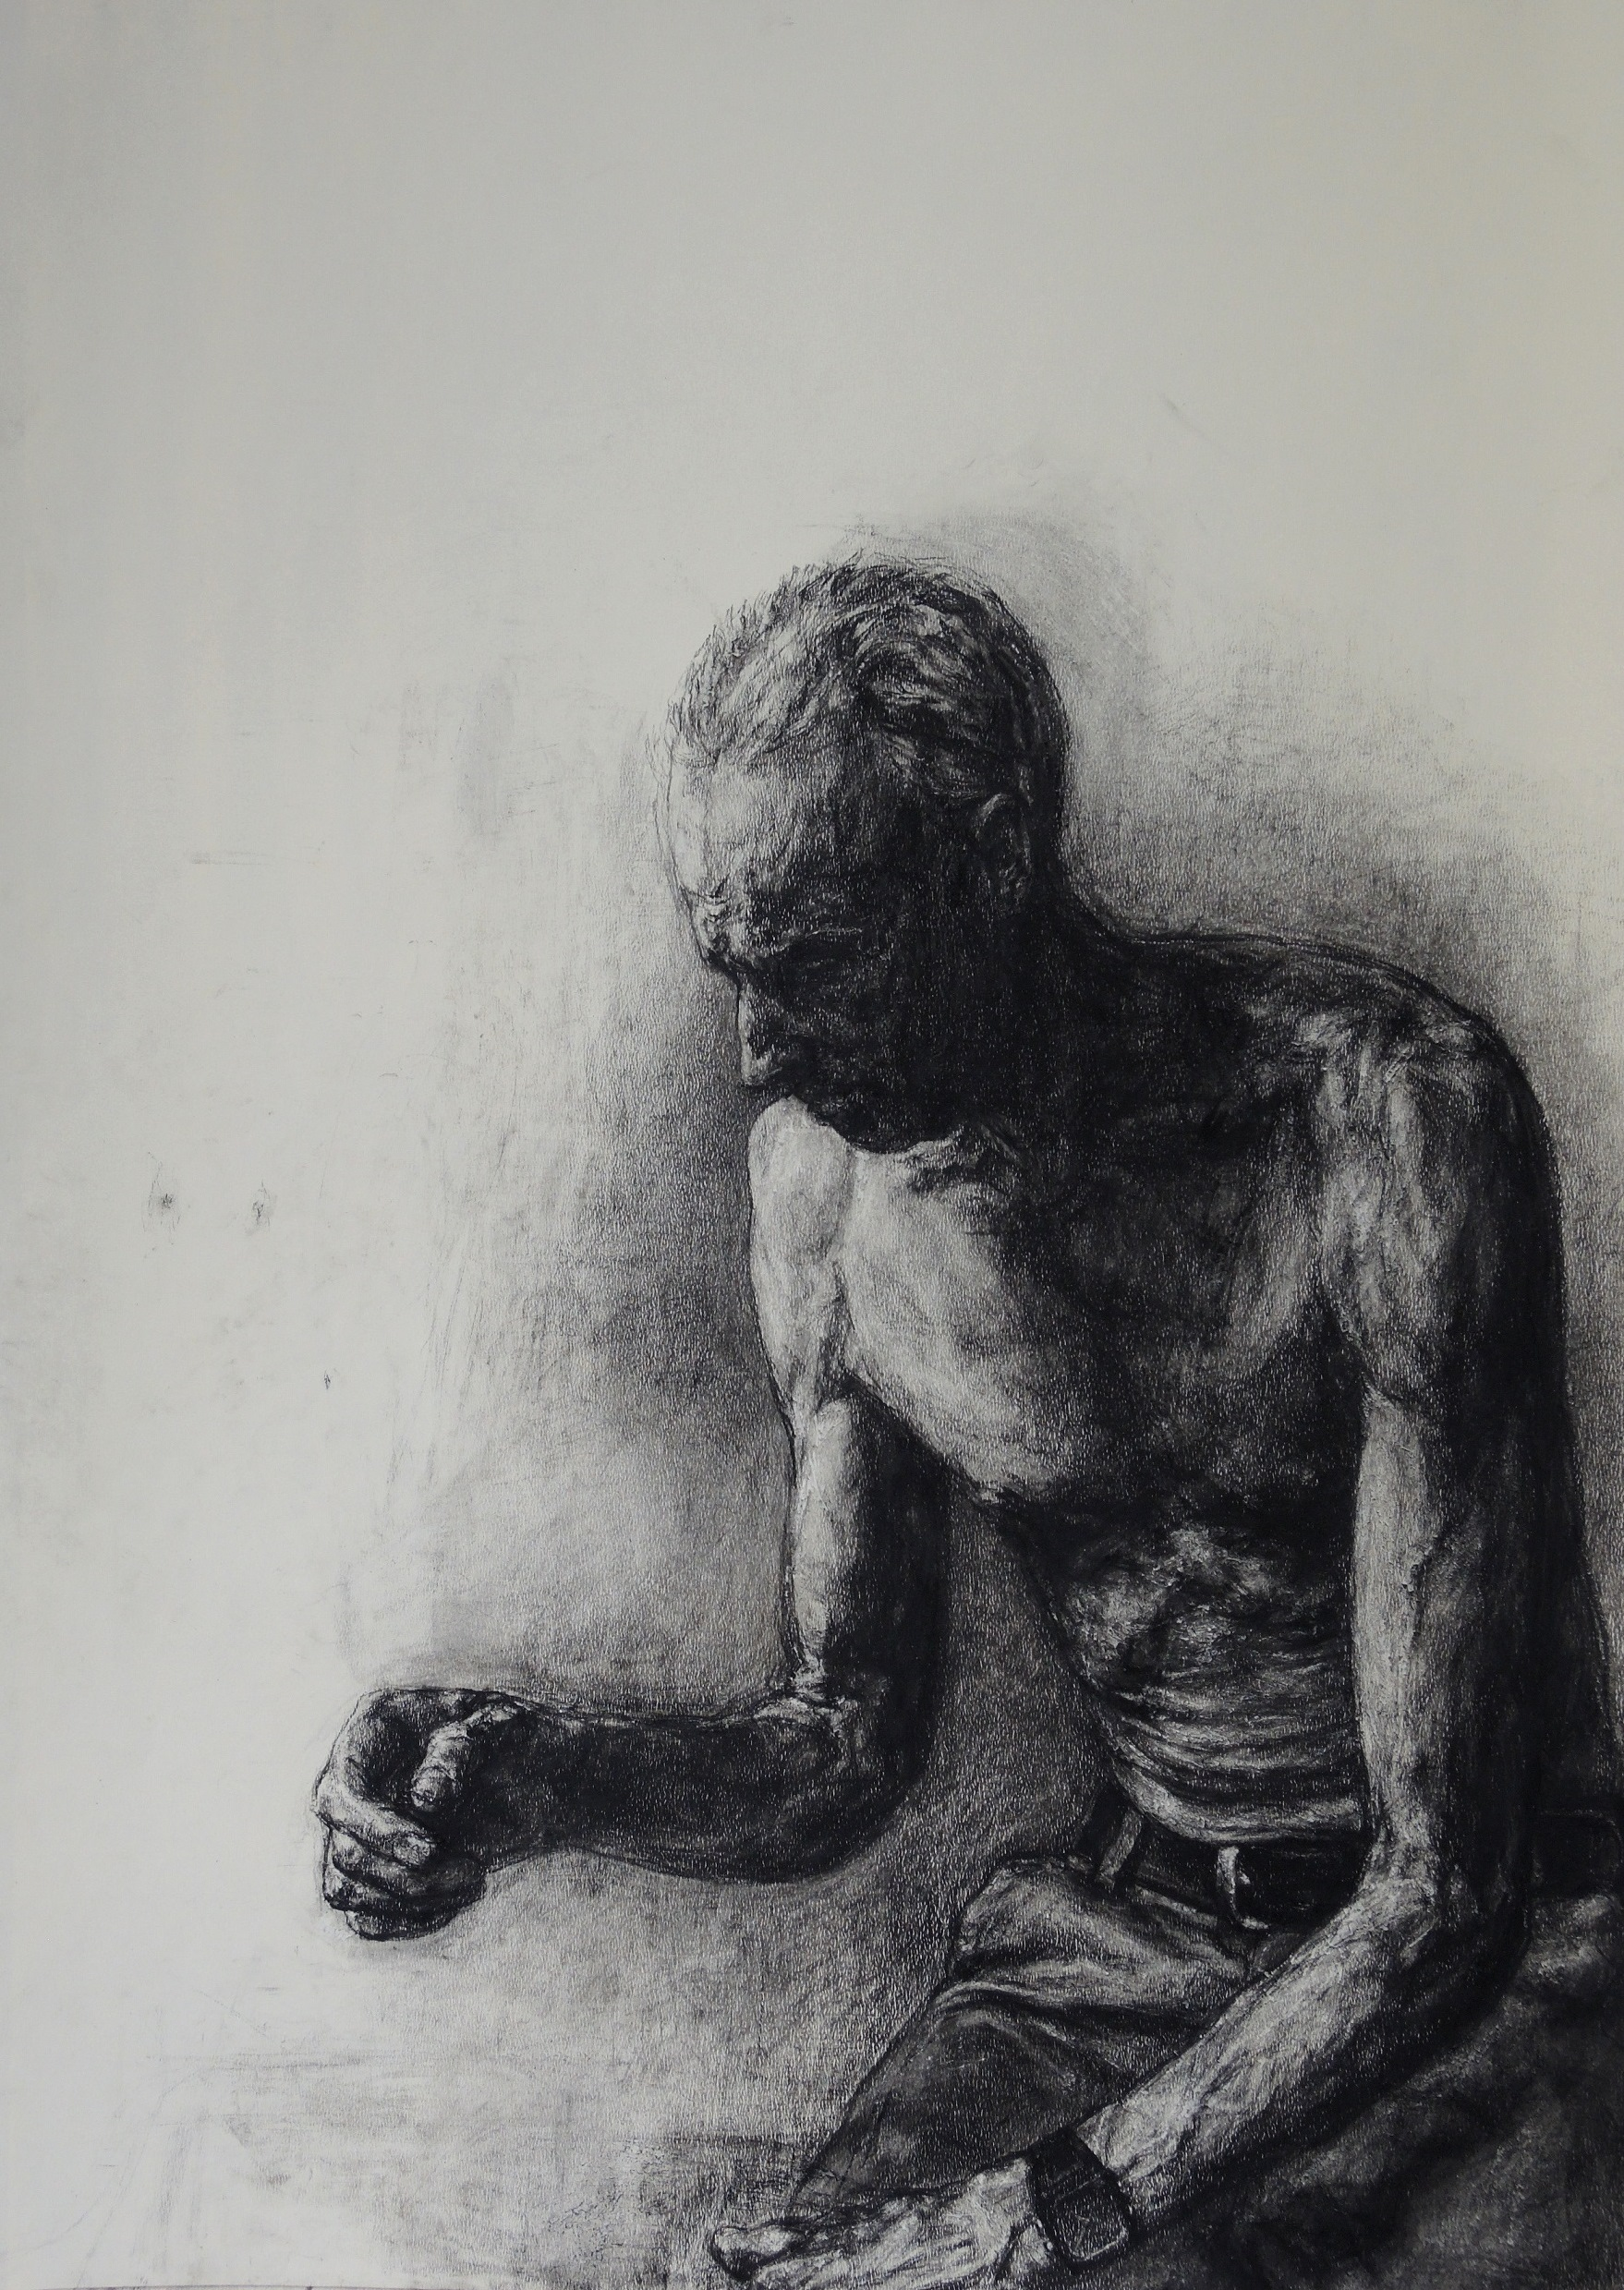 Peter Grziwotz, Study as St Jerome for a self-portrait 2016, charcoal on paper, Courtesy of the artist.